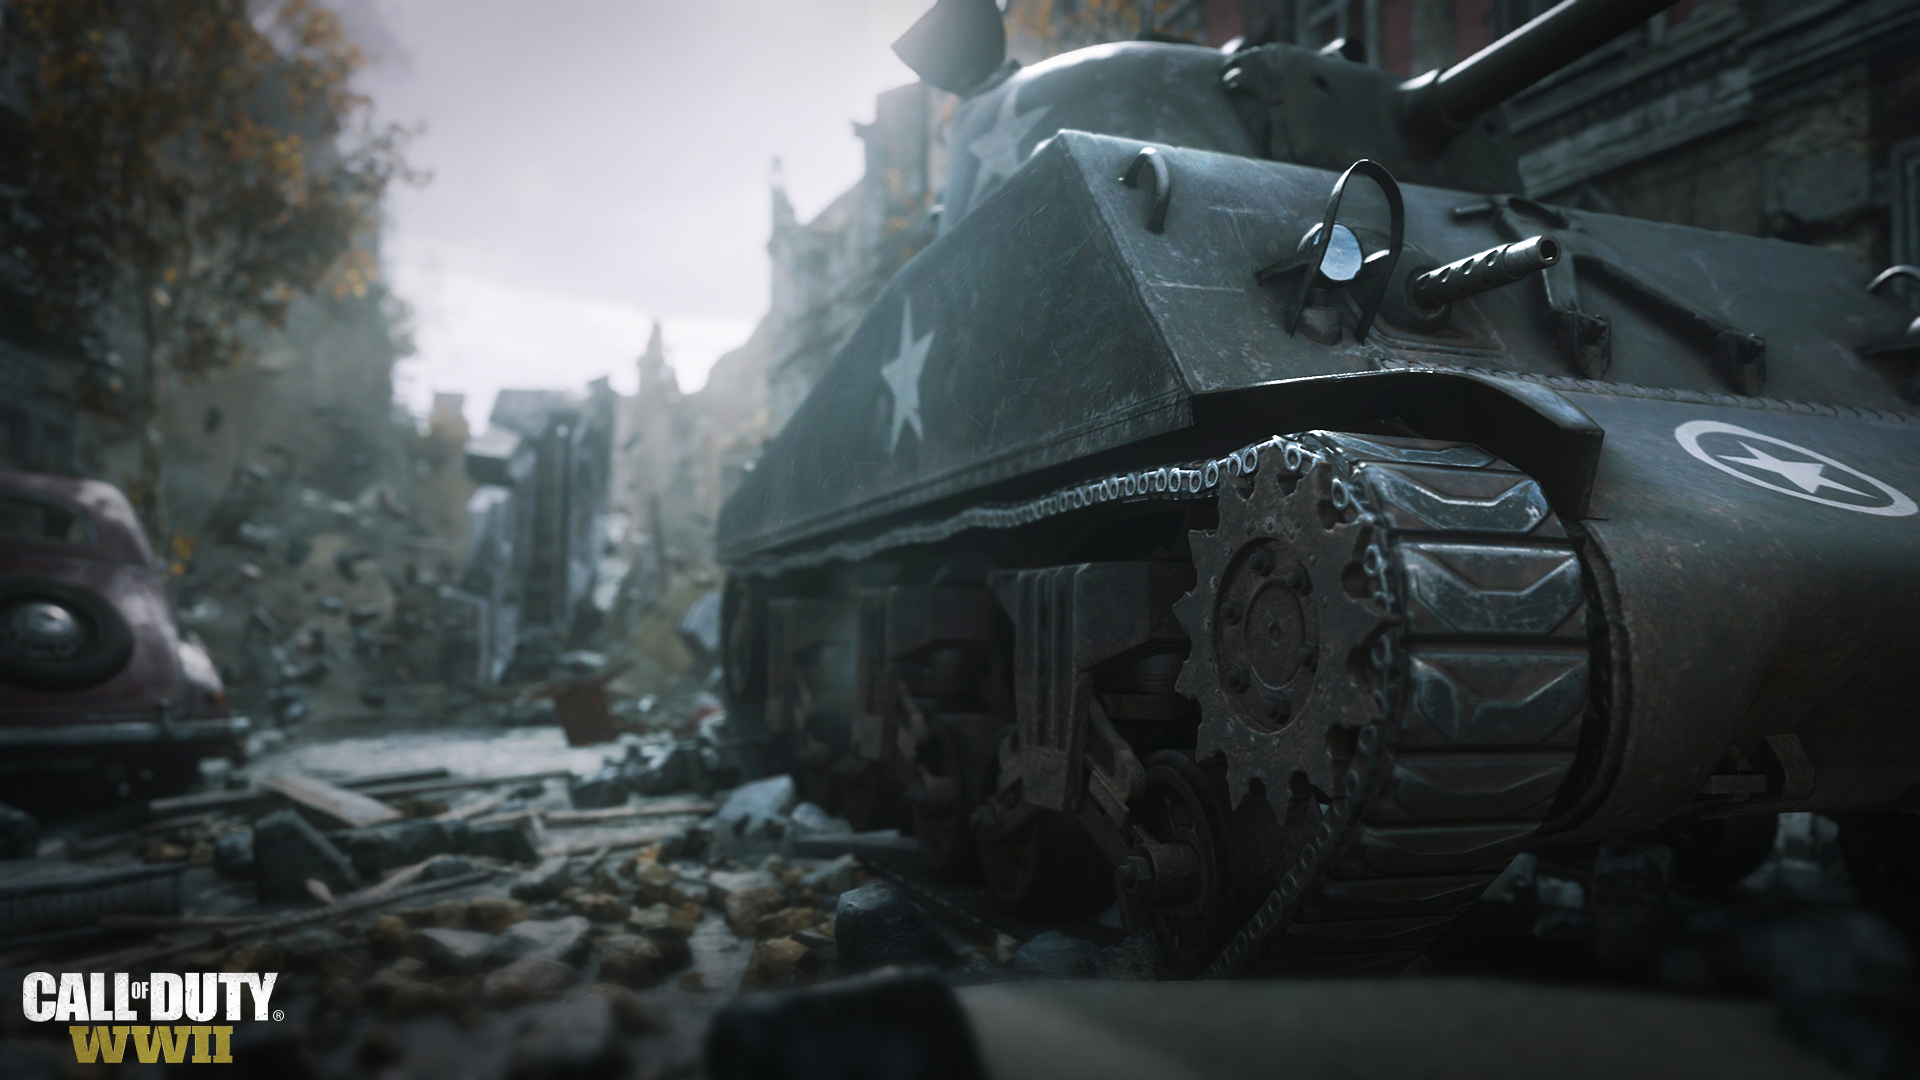 Открытый бета-тест Call of Duty: WWII пройдет на PC в конце сентября